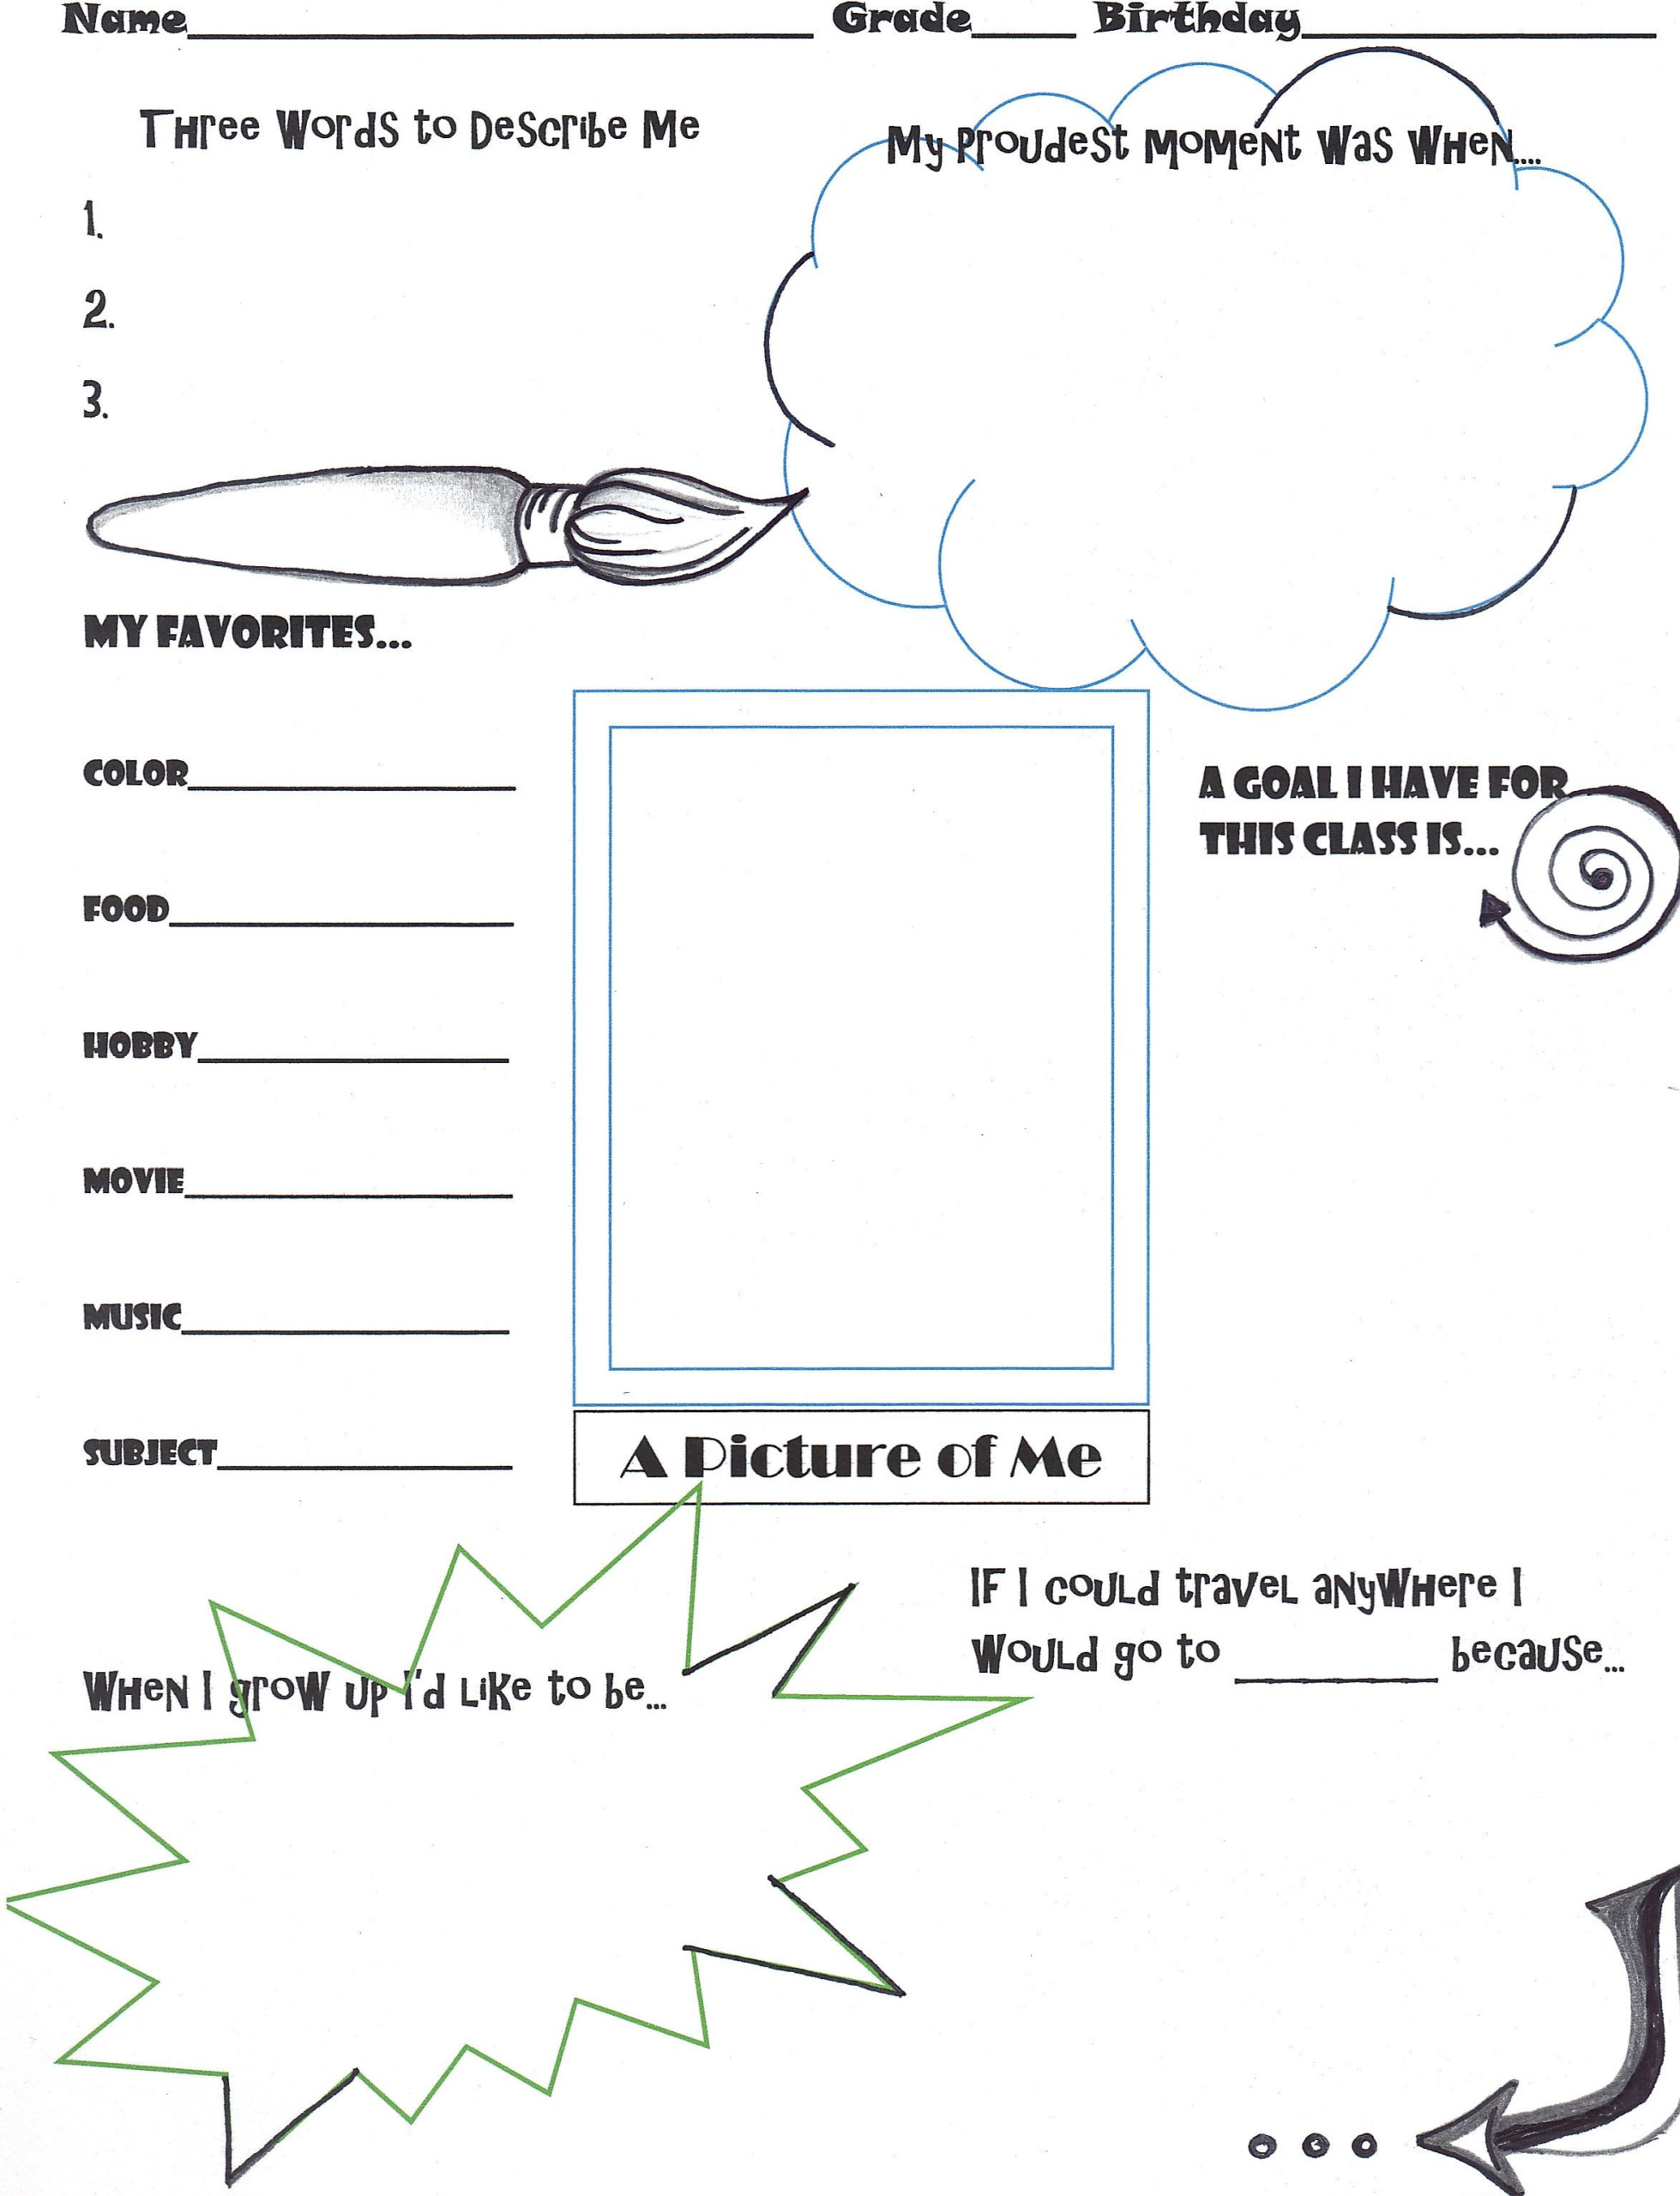 Get To Know You Worksheet Middle School